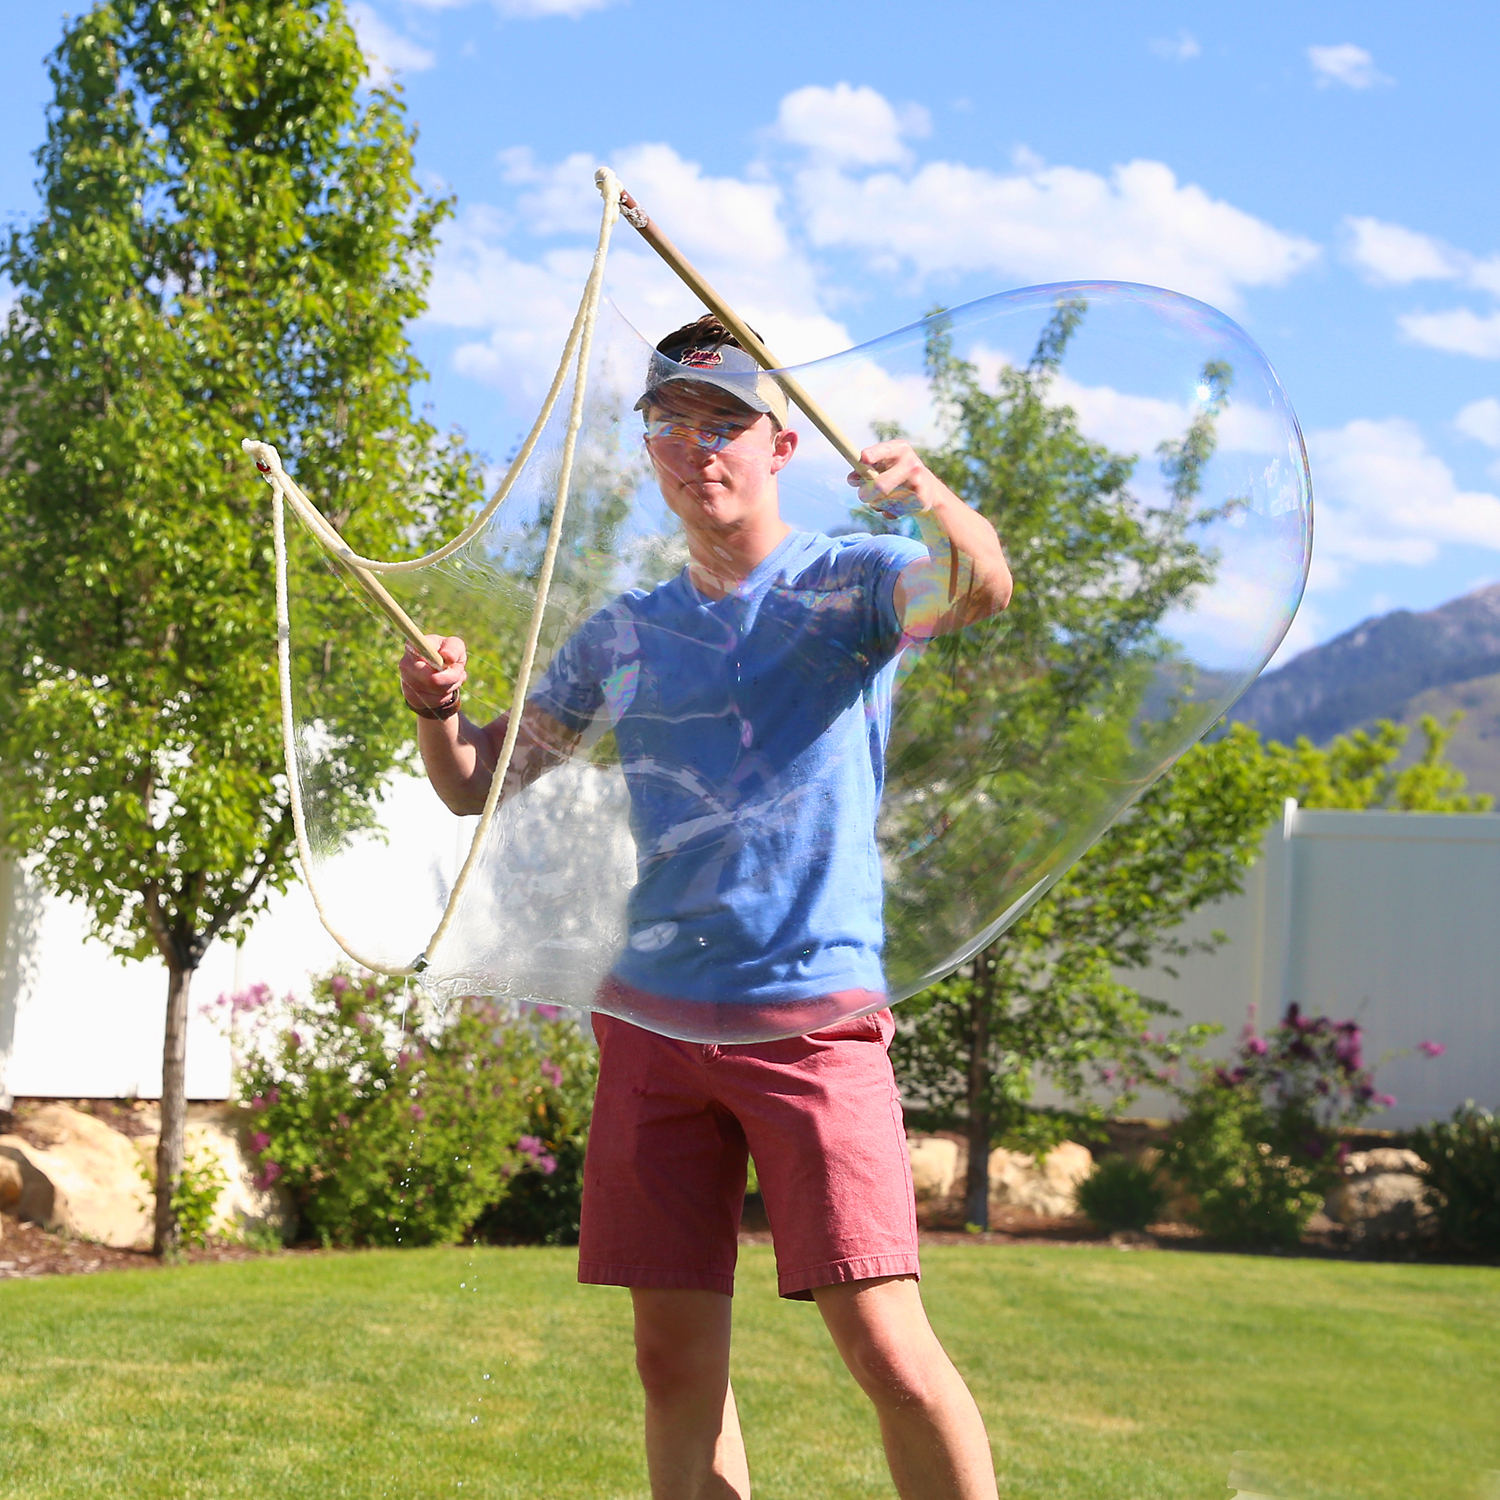 Boy holding giant bubble wand to blow giant bubbles